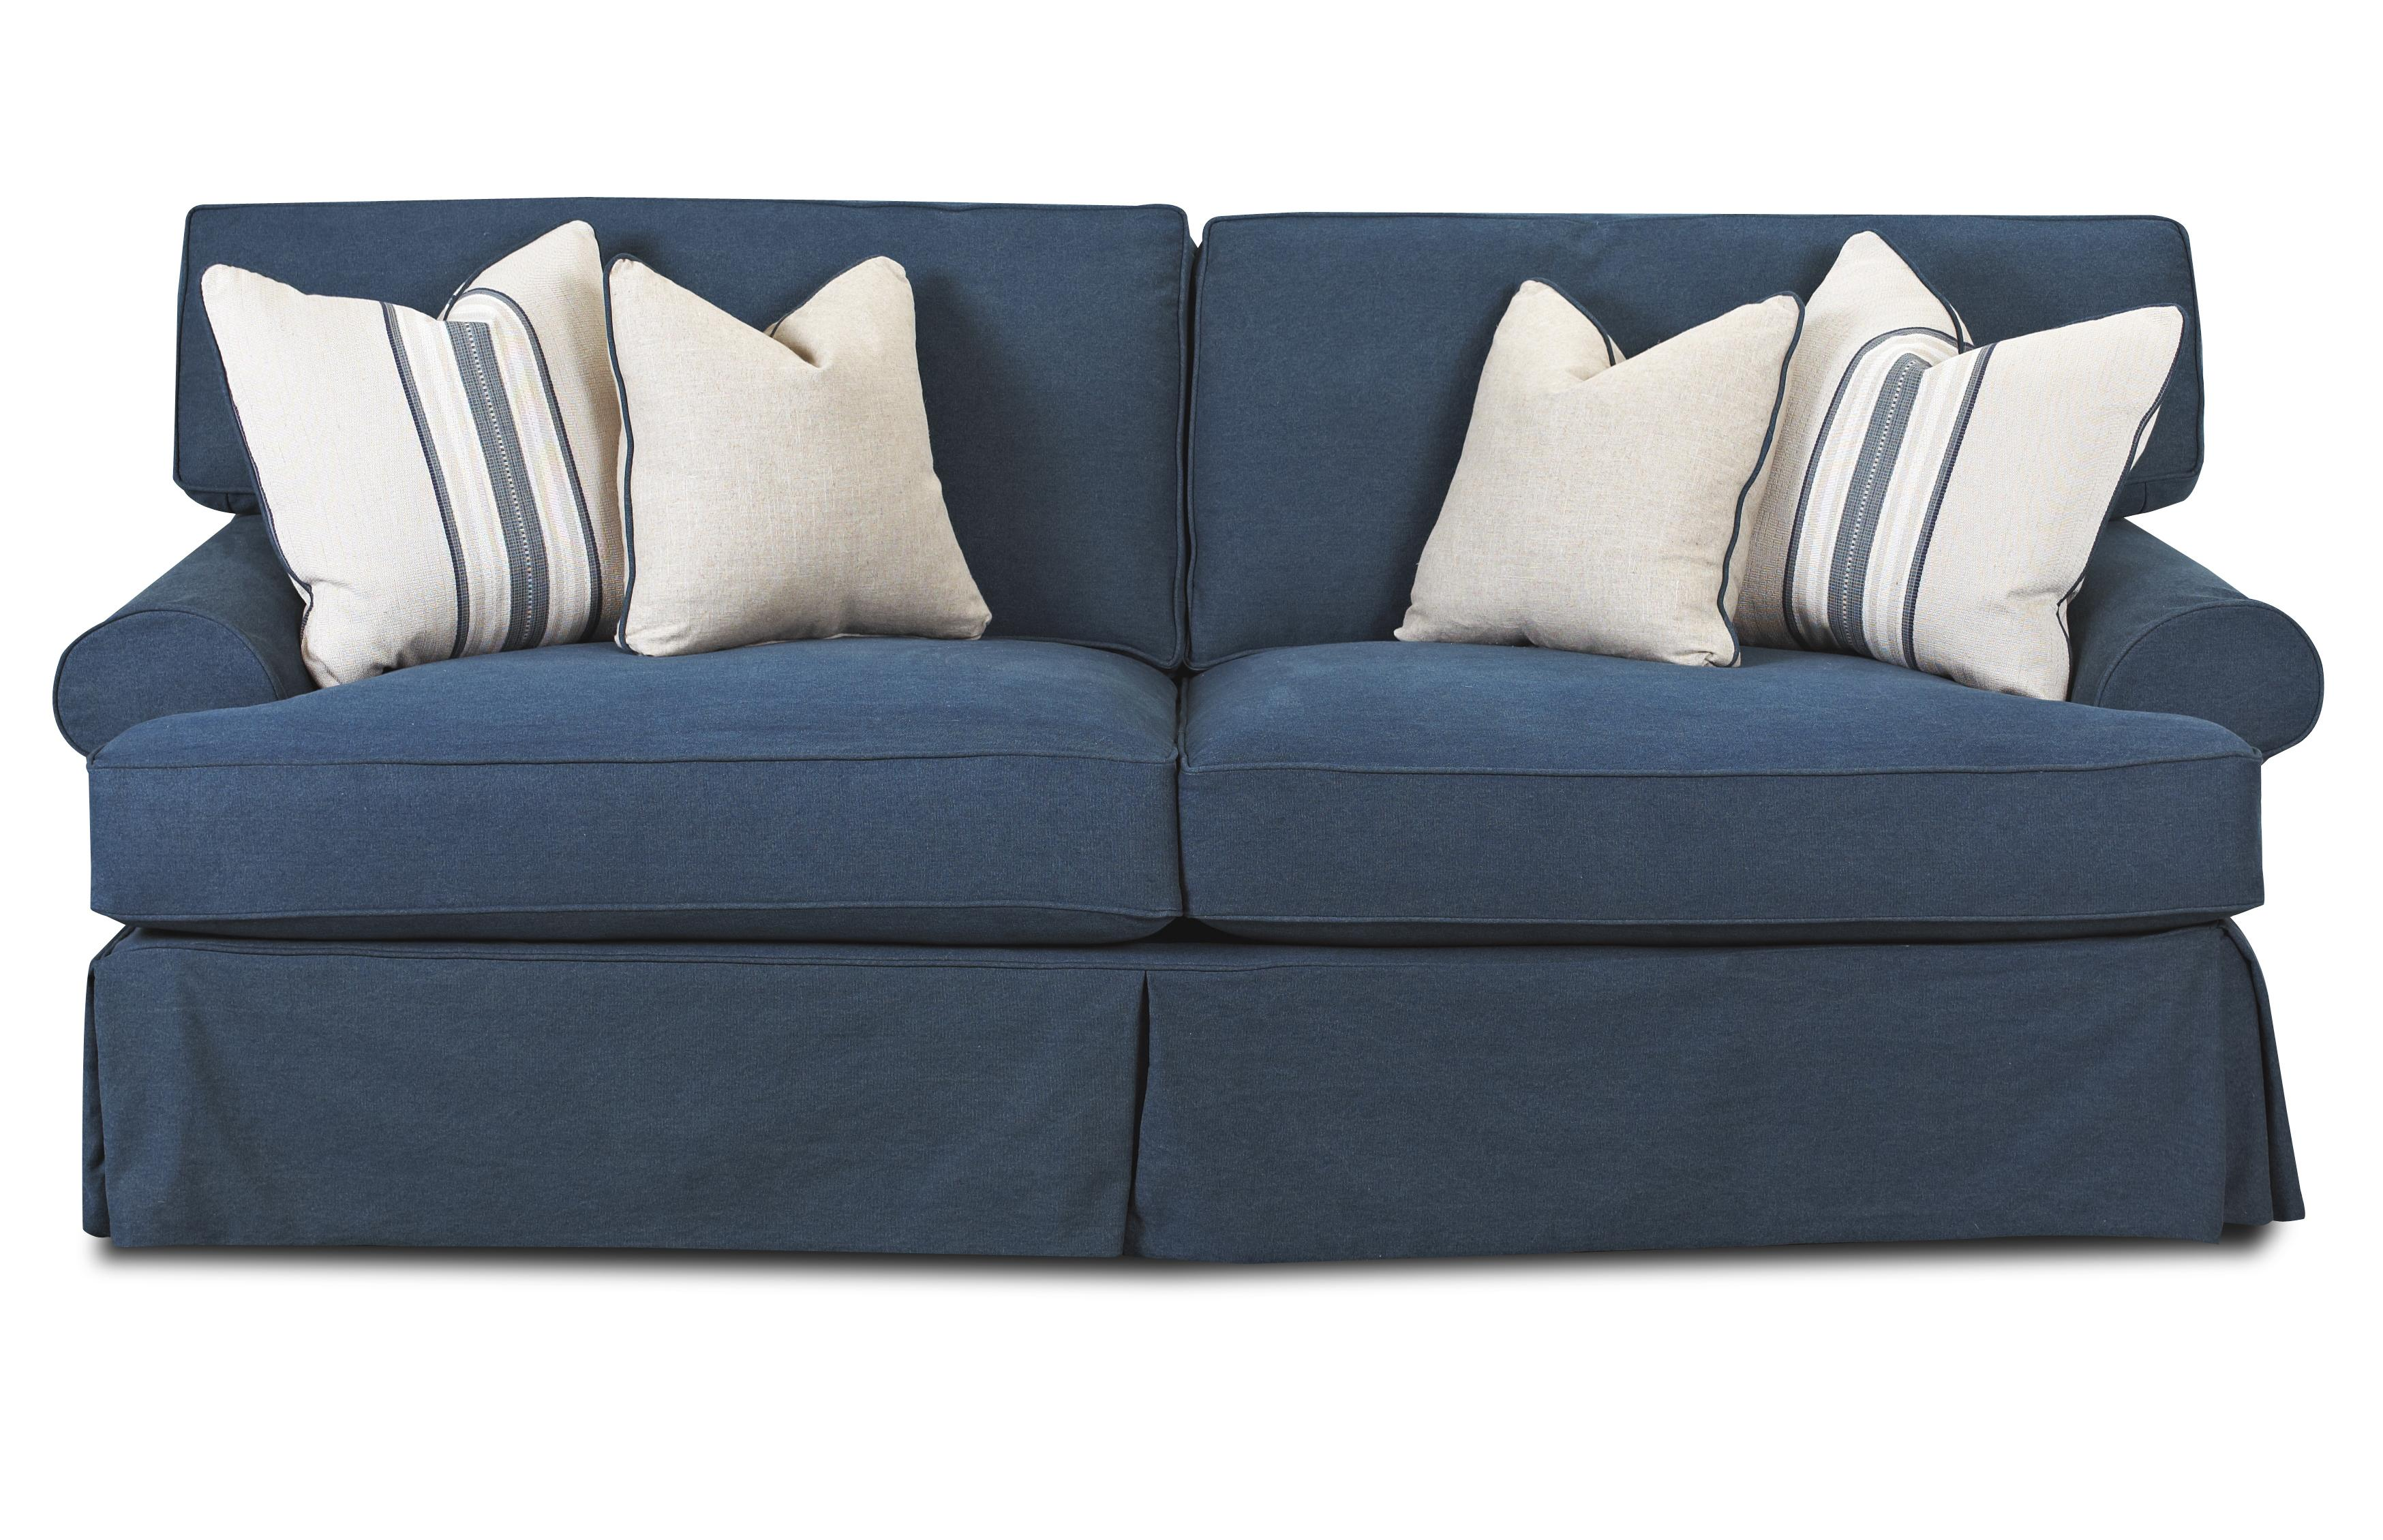 Lahoya Sofa with Blend Down Cushions by Klaussner at Catalog Outlet